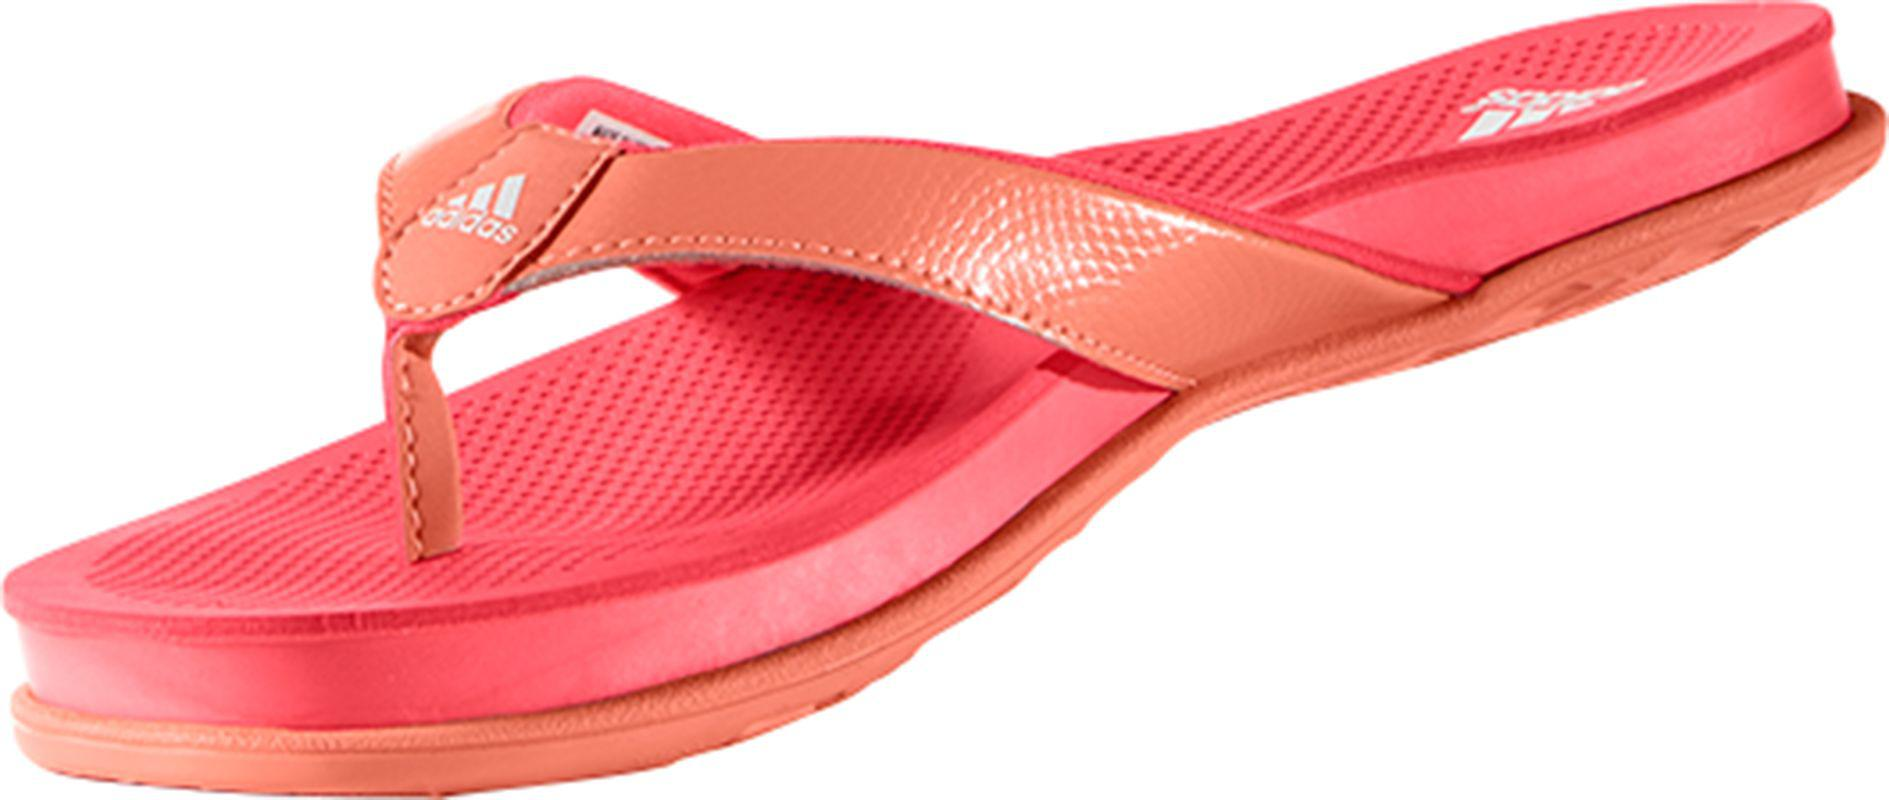 f1b1954e125b Lyst - adidas Originals Adilette Supercloud Plus Flip Flops in Orange